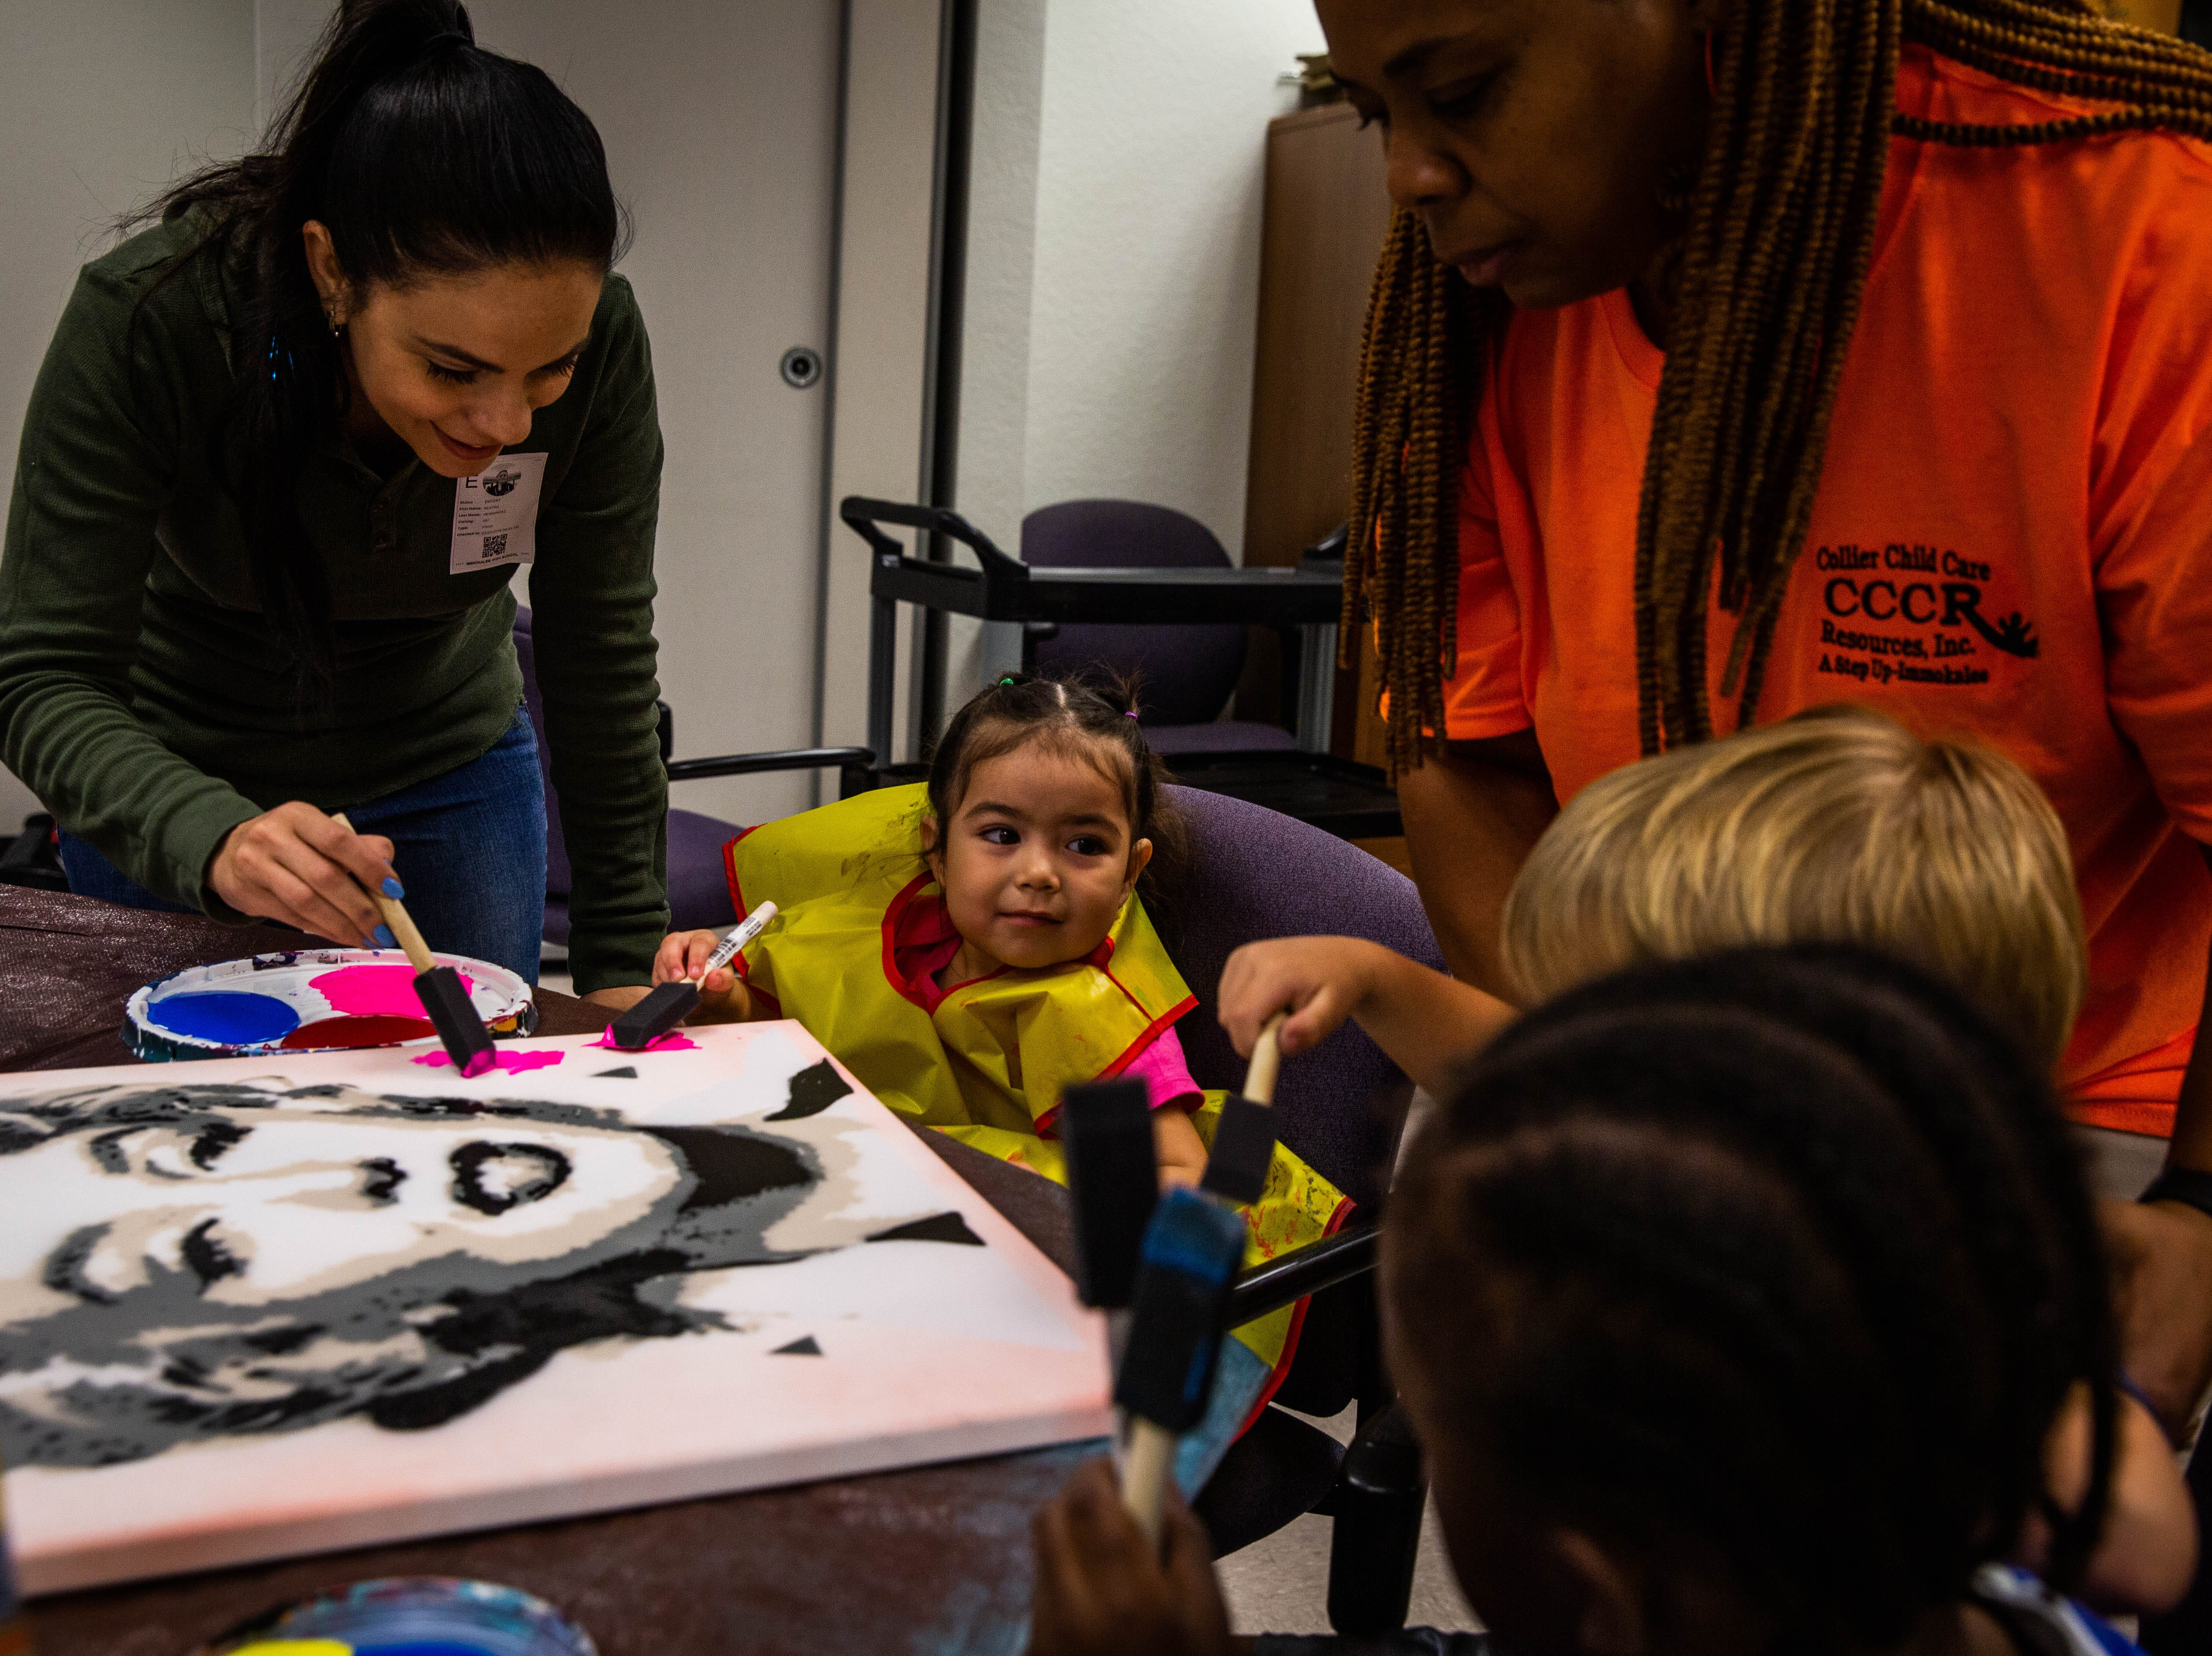 Beatriz Zotter, left, helps children at A Step Up paint on a canvas at Immokalee High School on March 20, 2019.